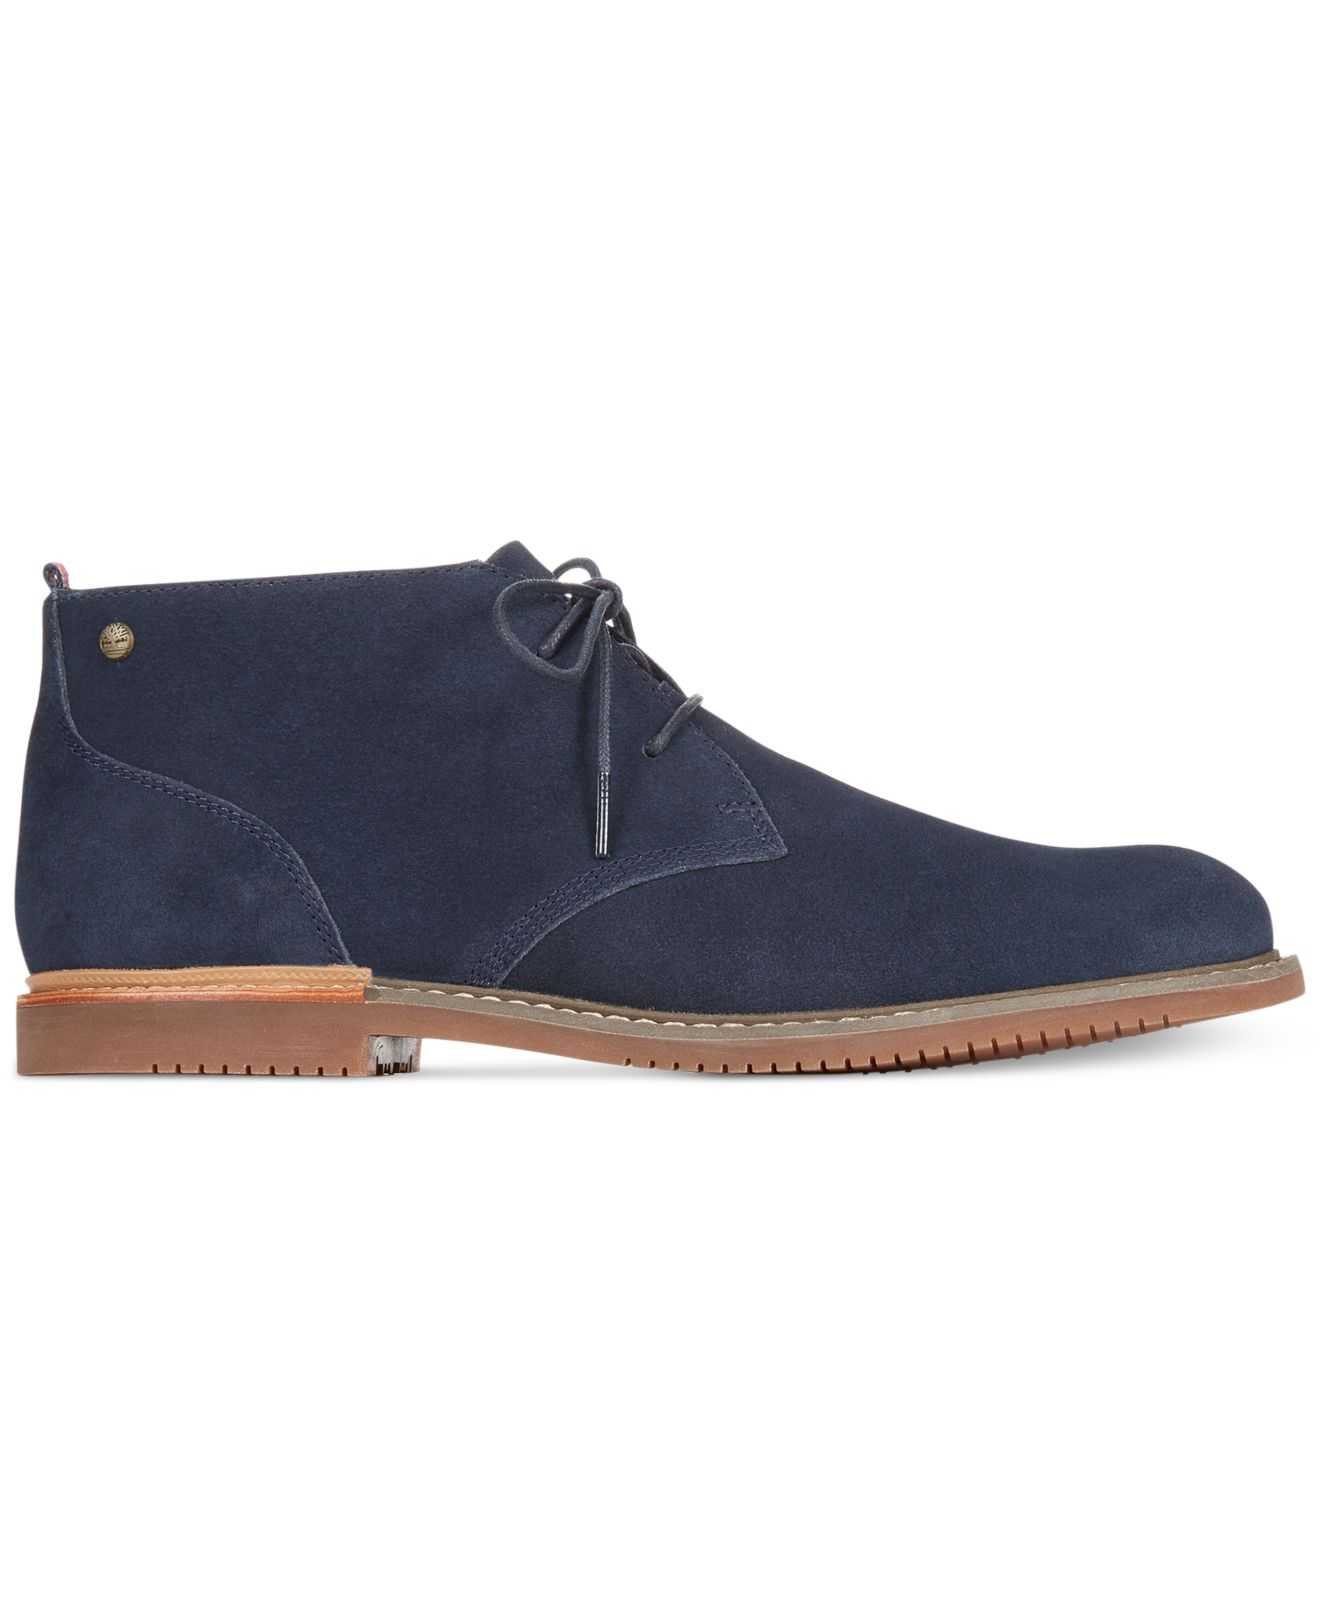 c638d12d790 Lyst - Timberland Earthkeepers Brook Park Chukka Boots in Blue for Men